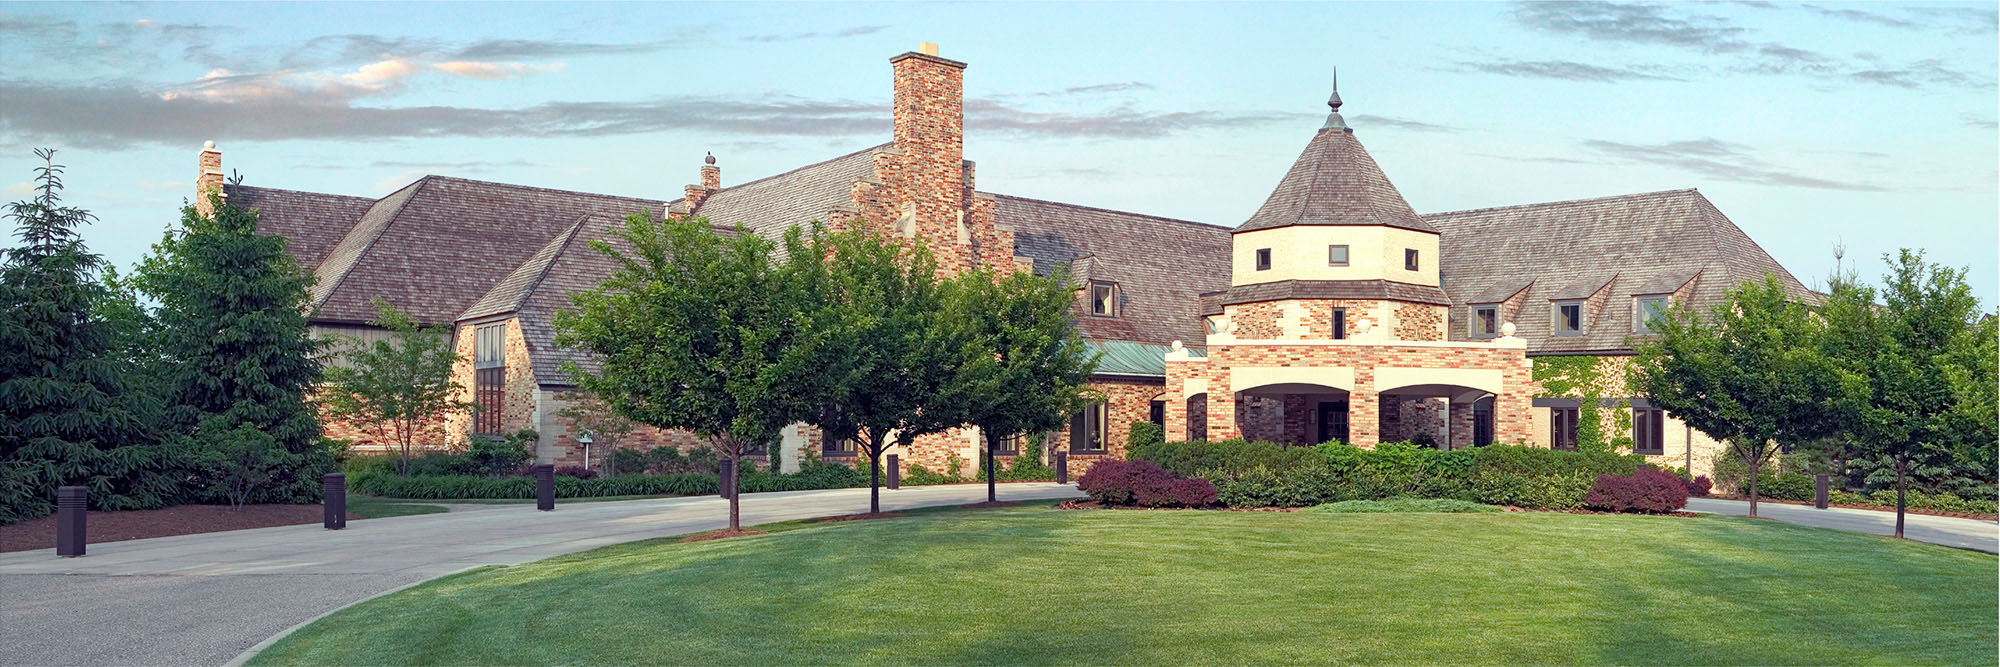 Golf Course Image - Cascade Hills Clubhouse